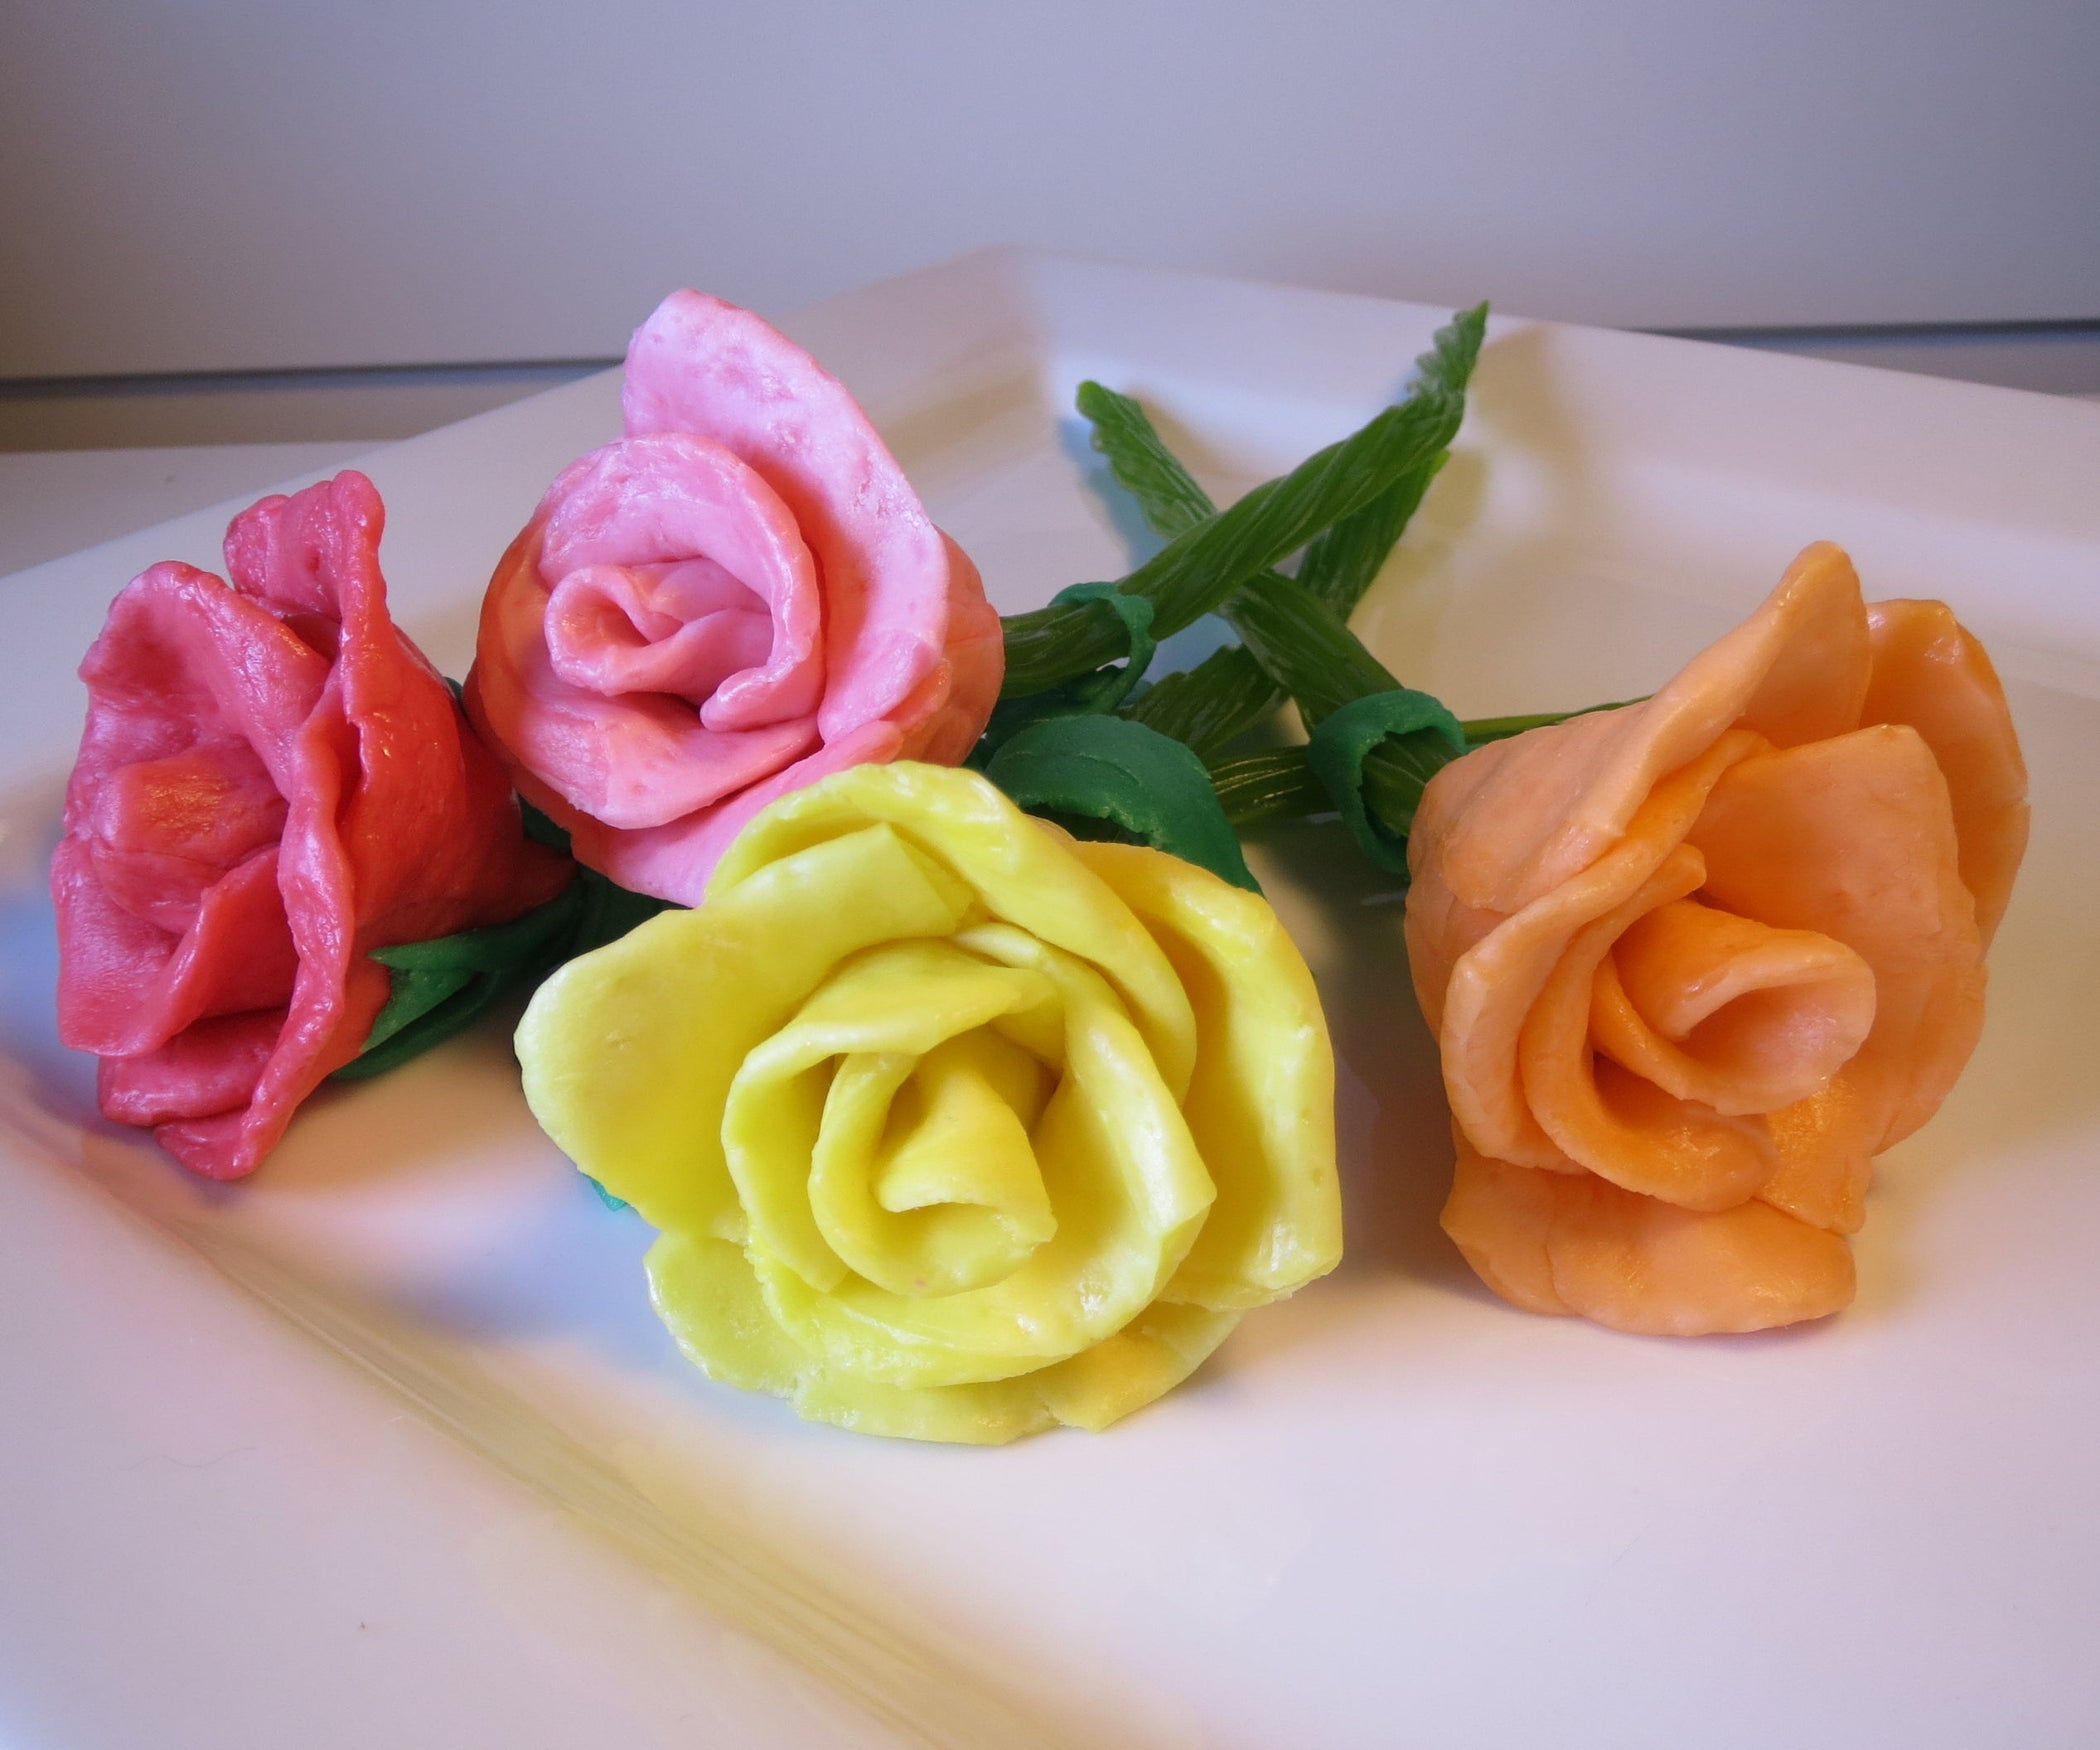 Starburst Candy Roses: 7 Steps (with Pictures)